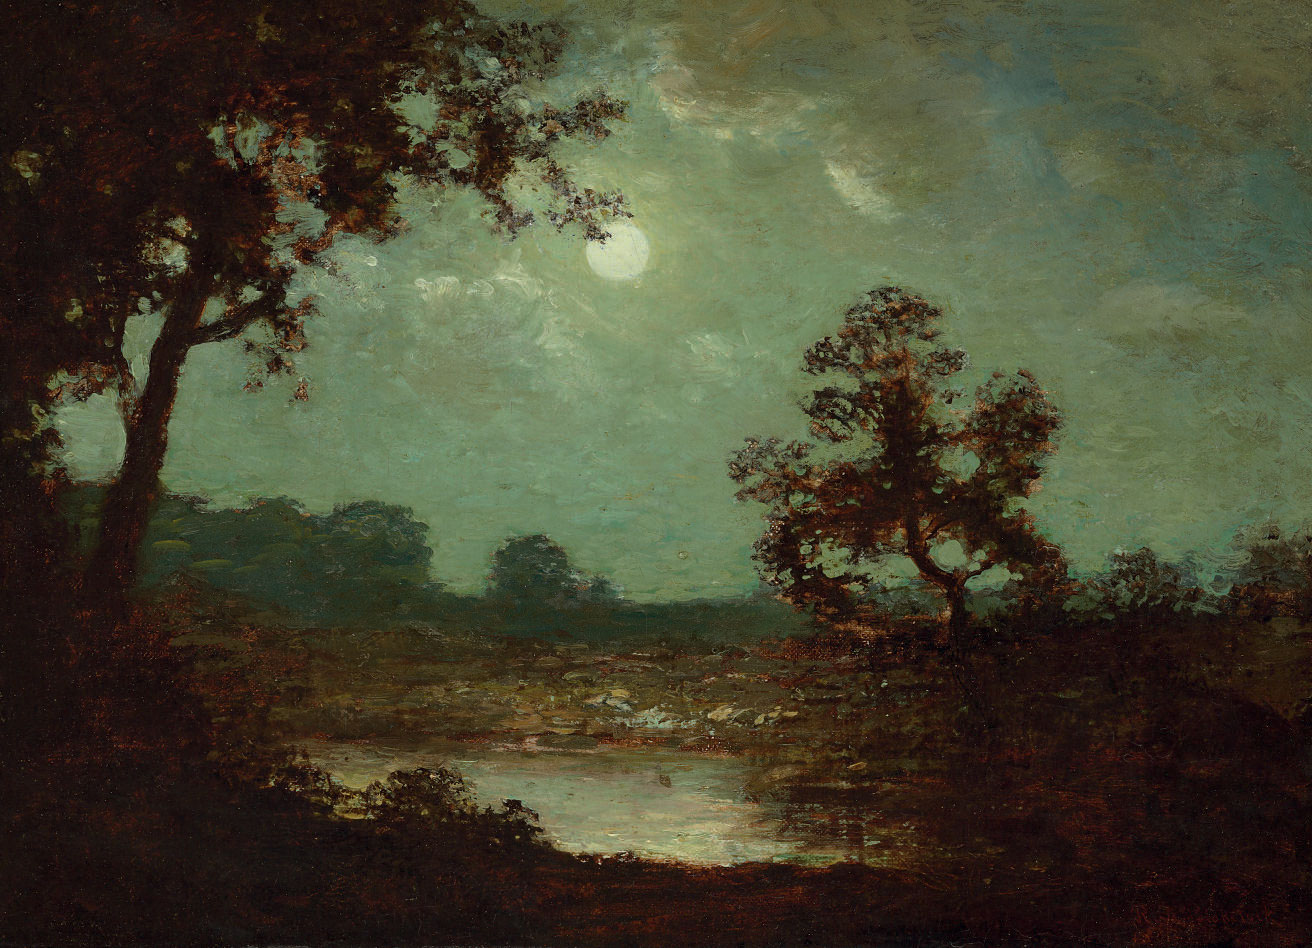 Landscape at Moonlight